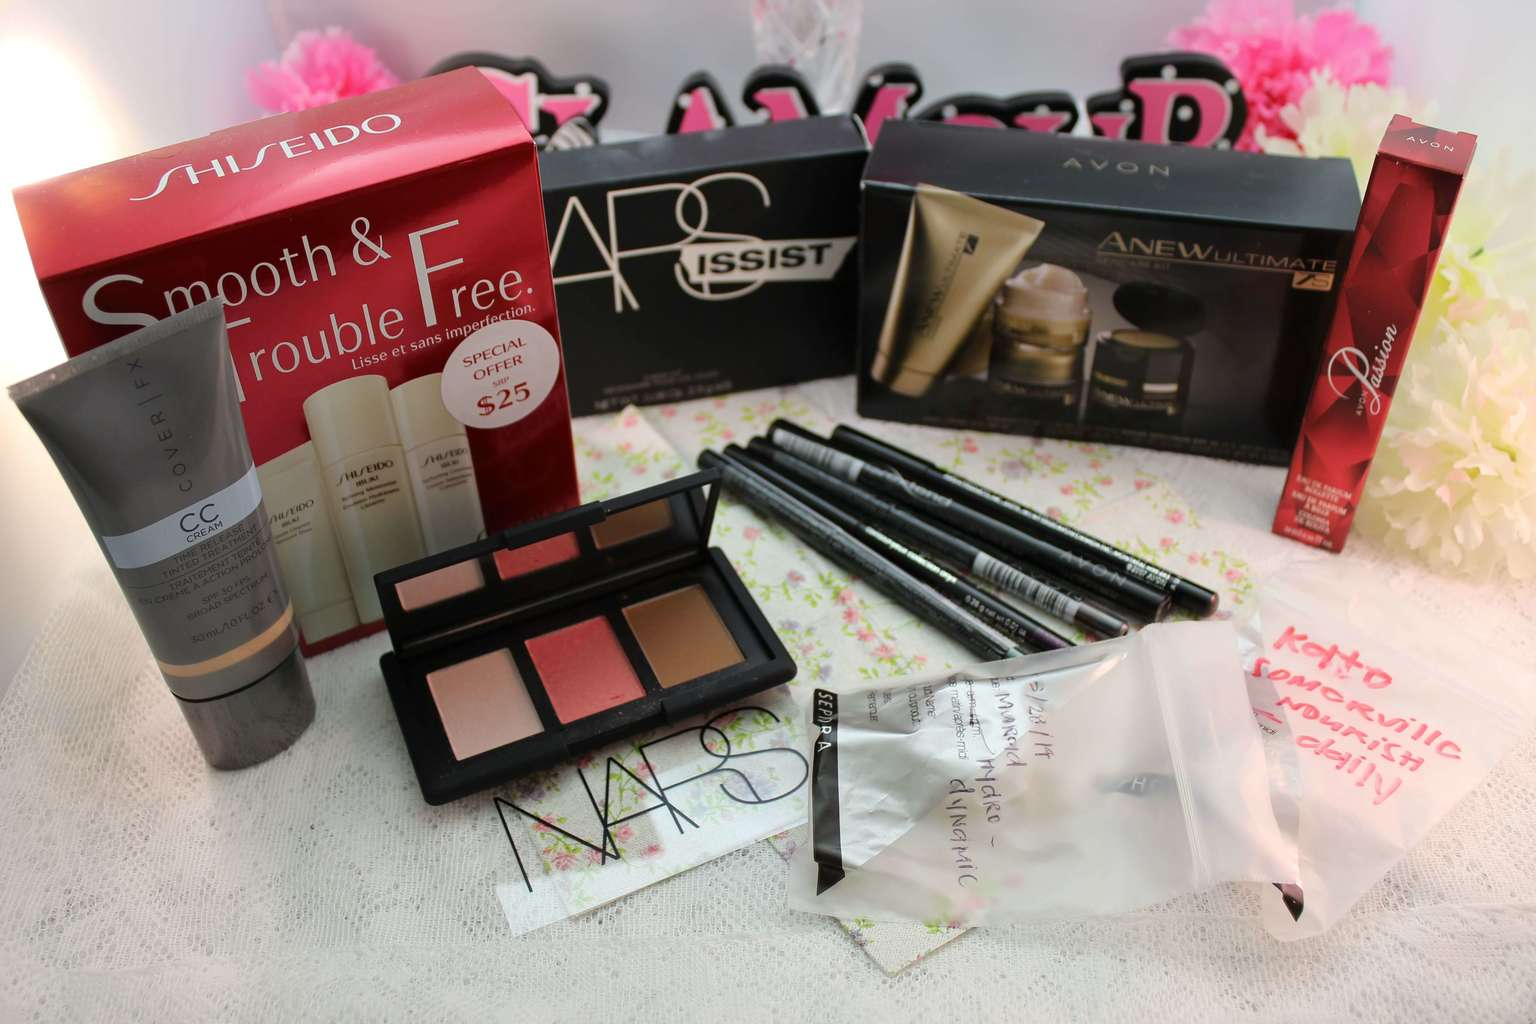 Beth and Beauty's Random Beauty Haul: Sephora, Nordstrom and Avon!